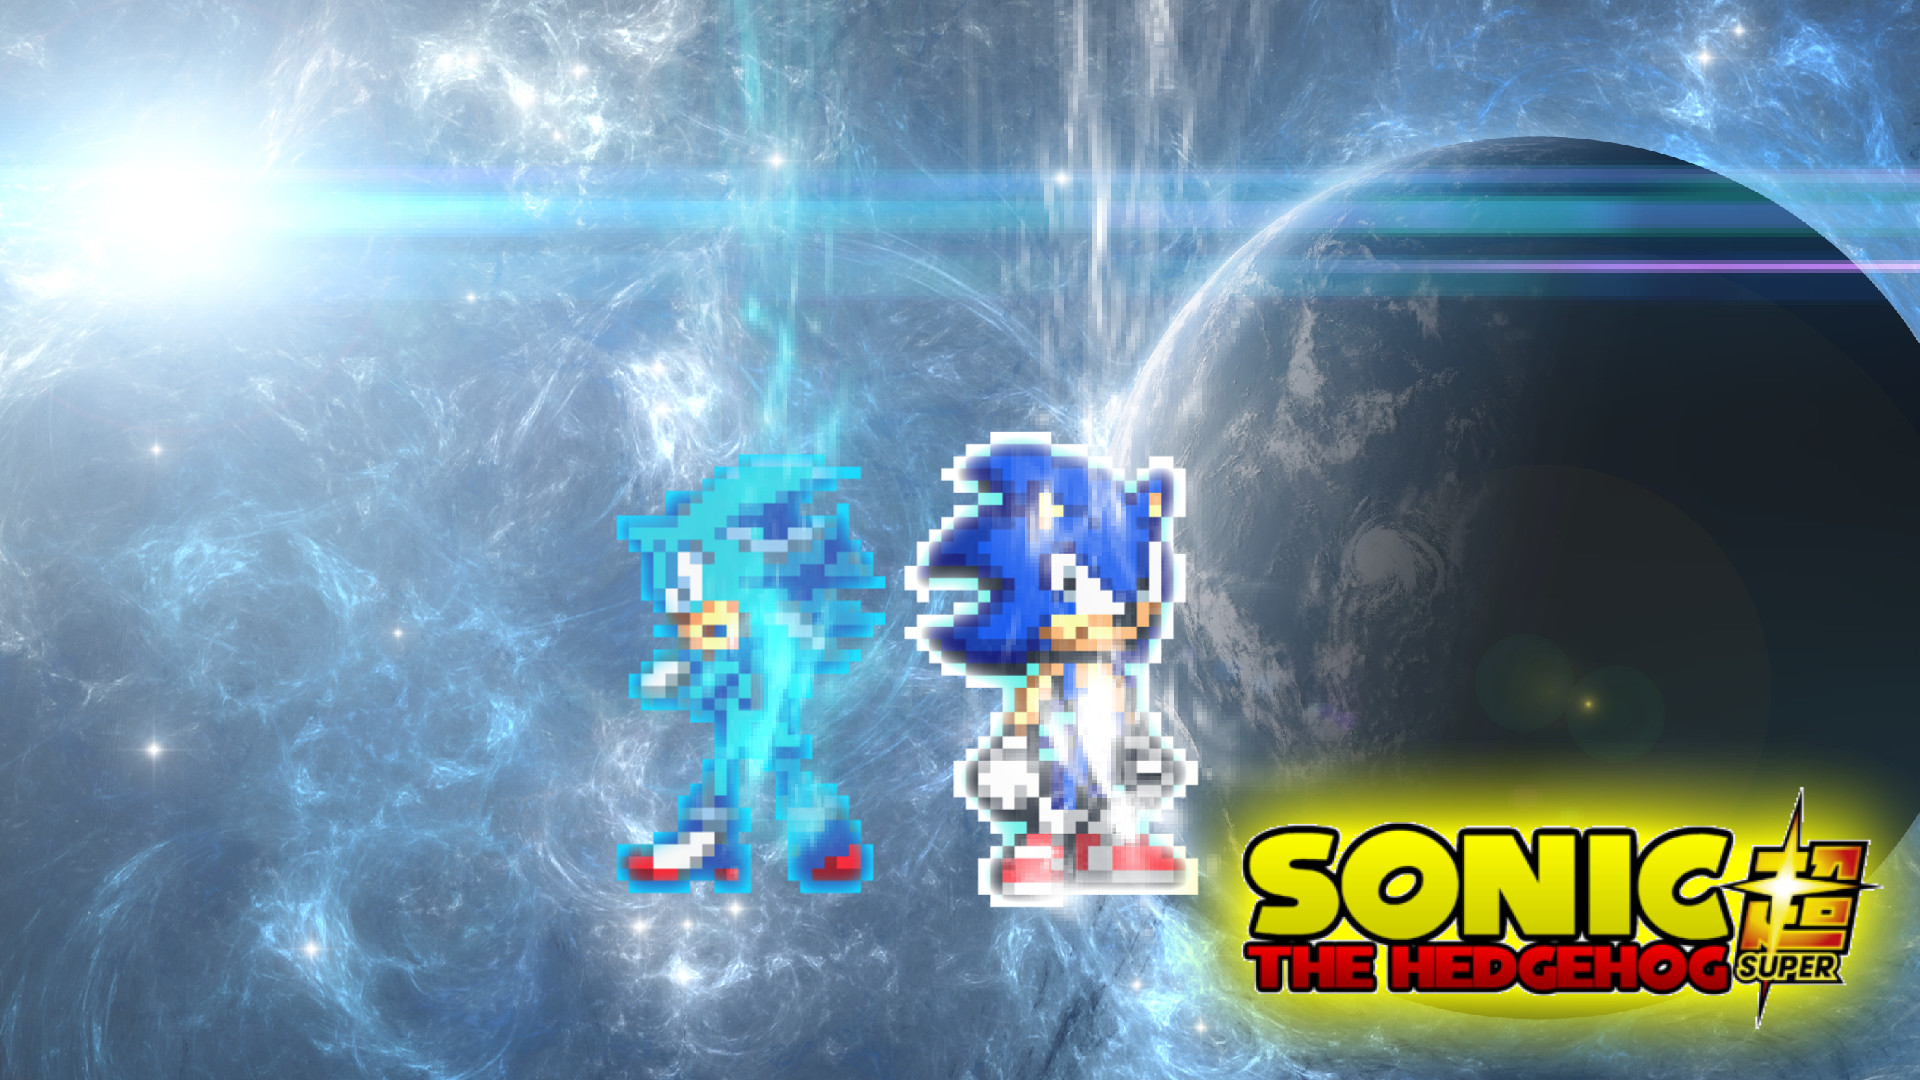 1920x1080 ... DrizzlyScroll1996 UI Sonic and Beyond Super Shadow Blue Wallpaper. by  DrizzlyScroll1996